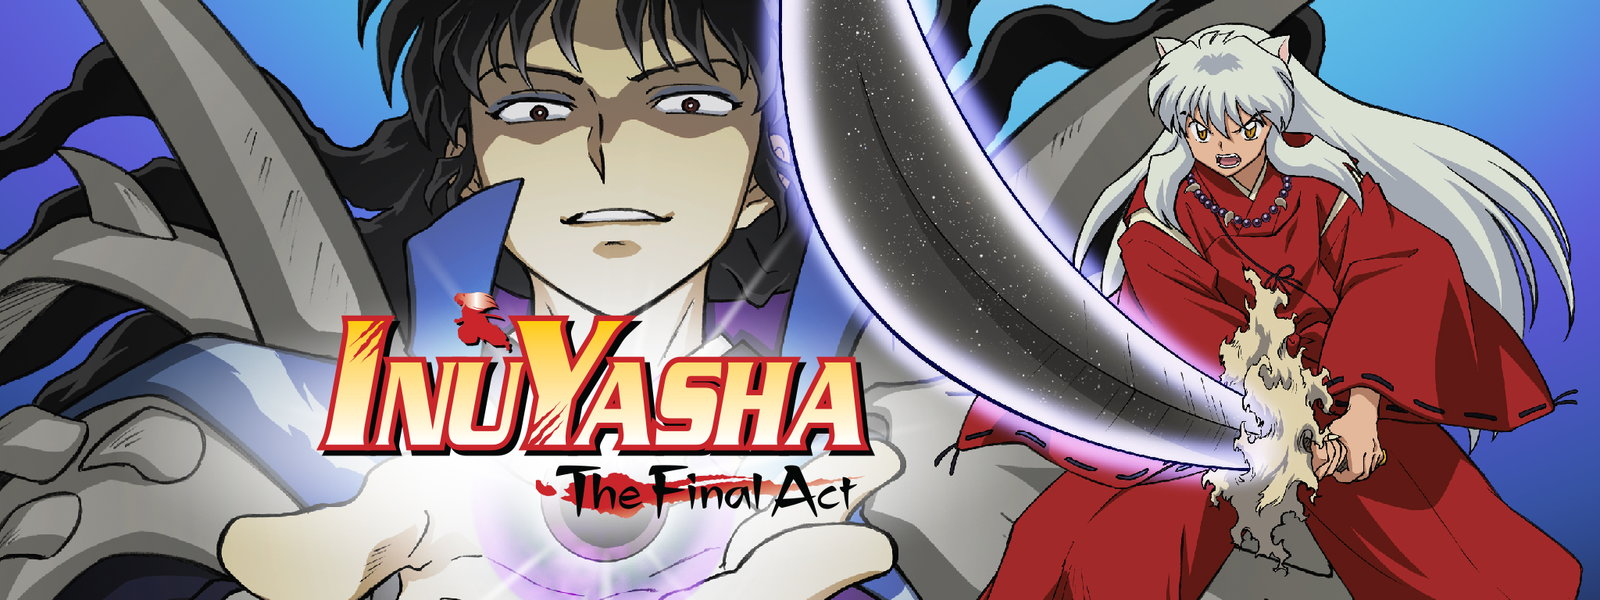 Inuyasha - The Final Act